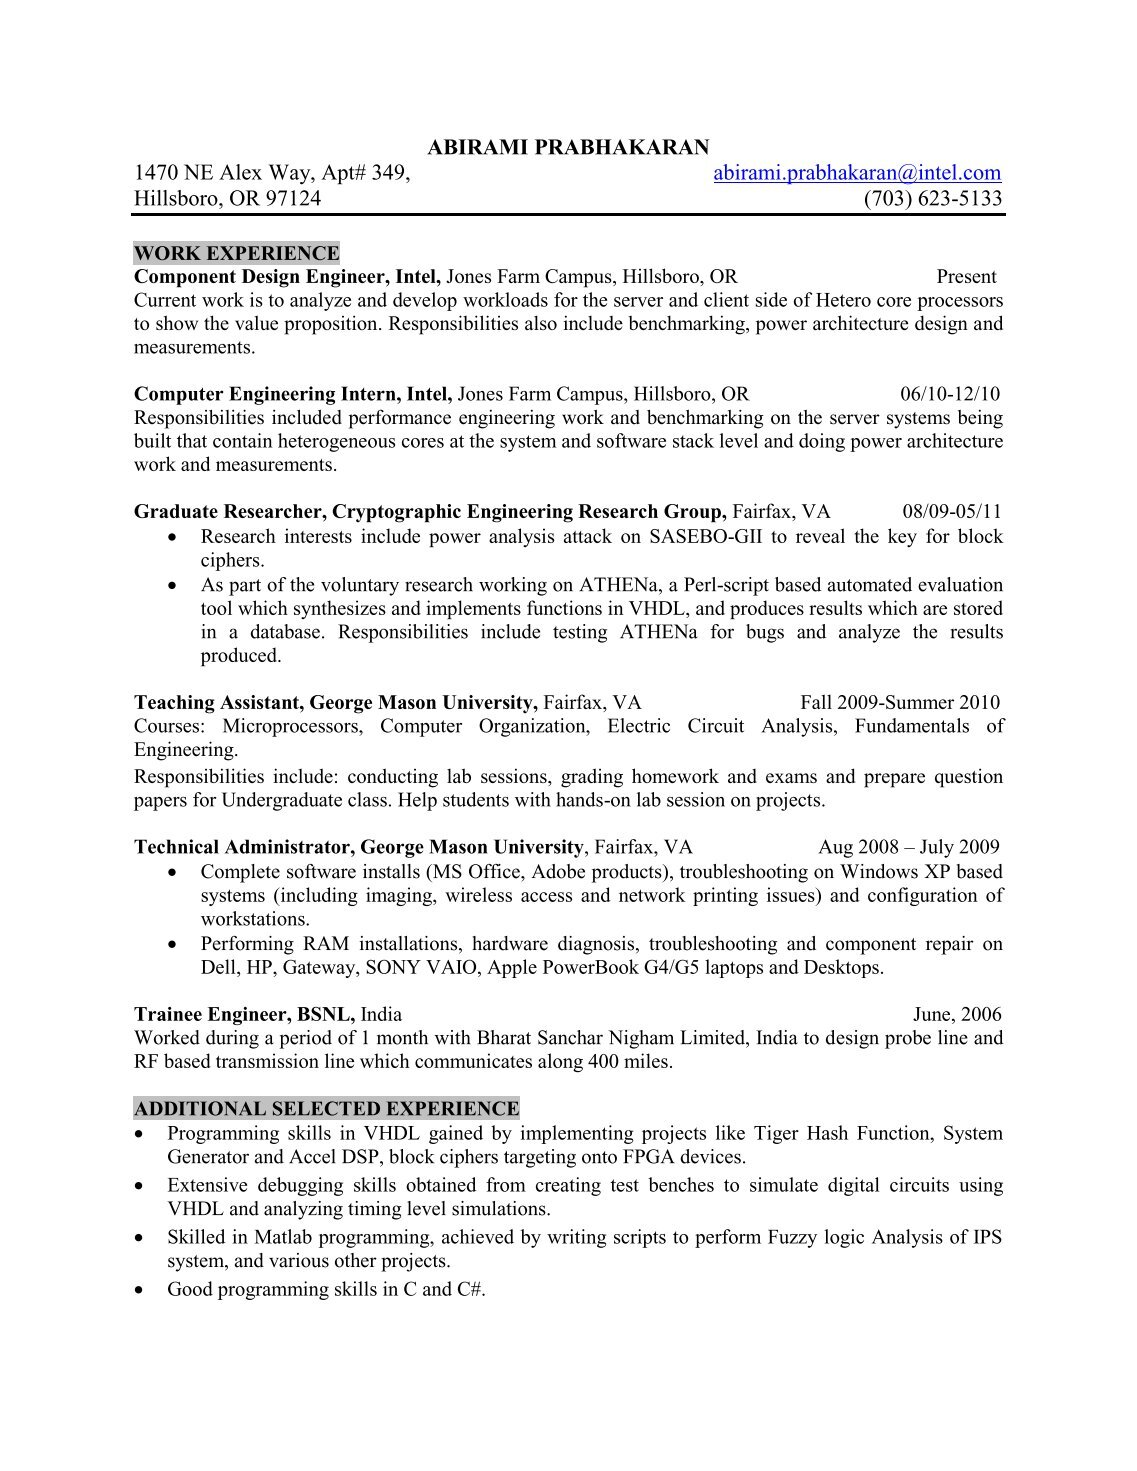 sample resume for engineering internship component engineer sample resumeml intel component design engineer sample resume plantation home - Network Design Engineer Sample Resume